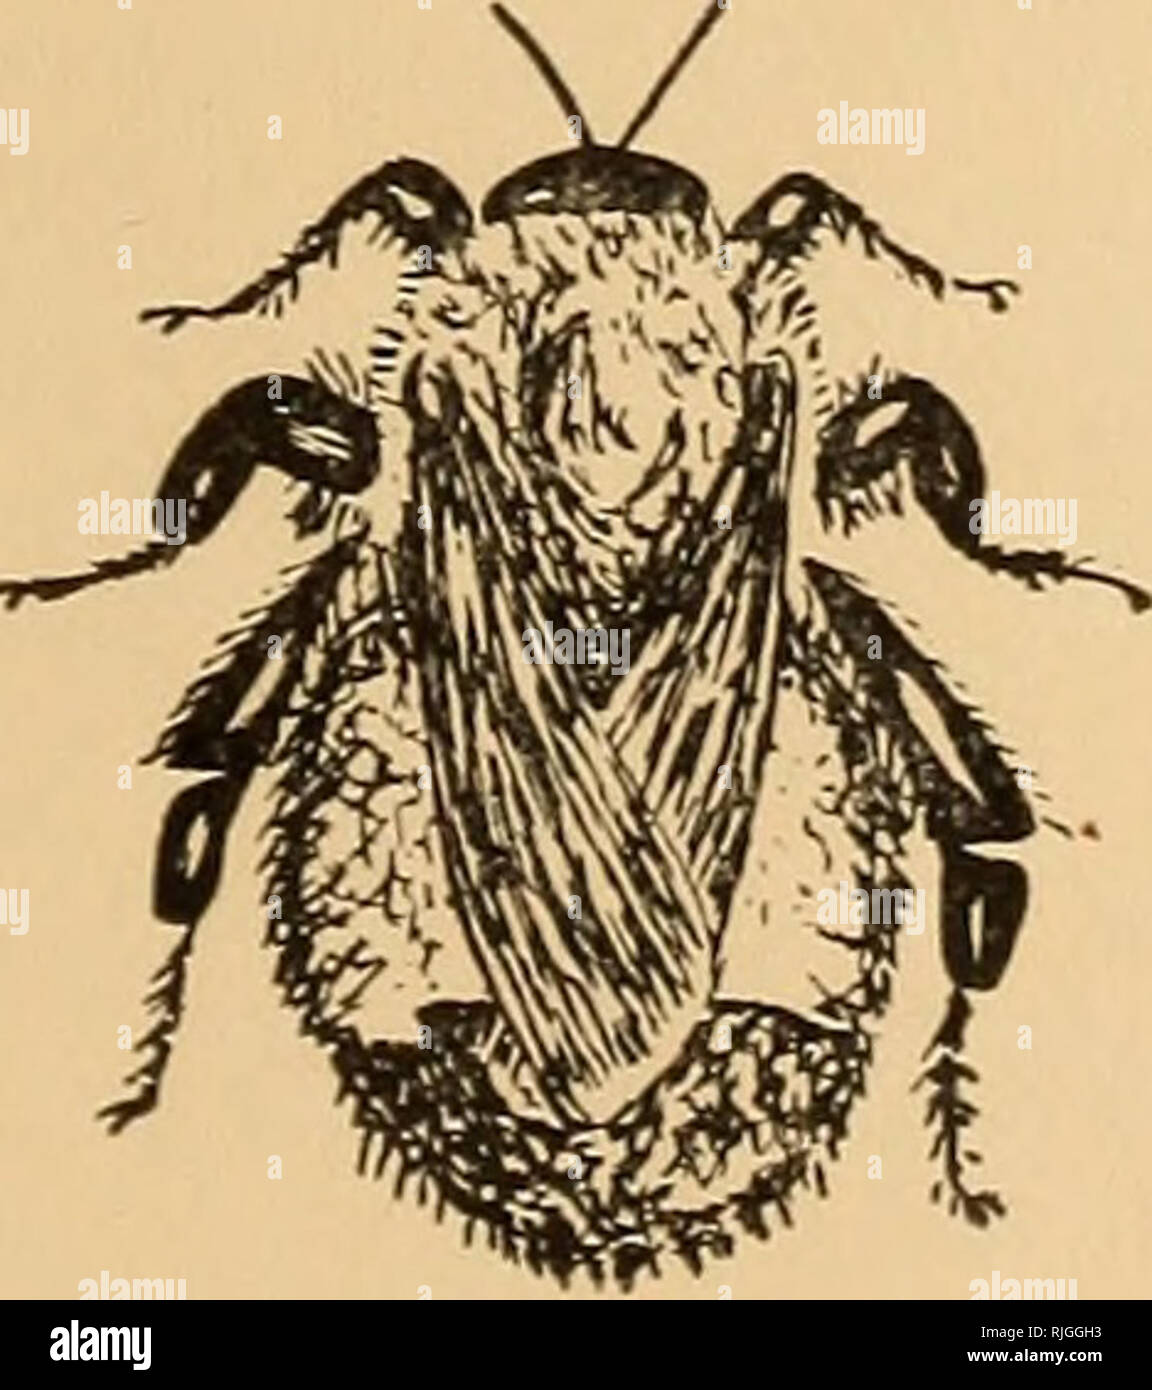 The bee people  Bees  Bombus, the Bumble-Bee  177 watch the